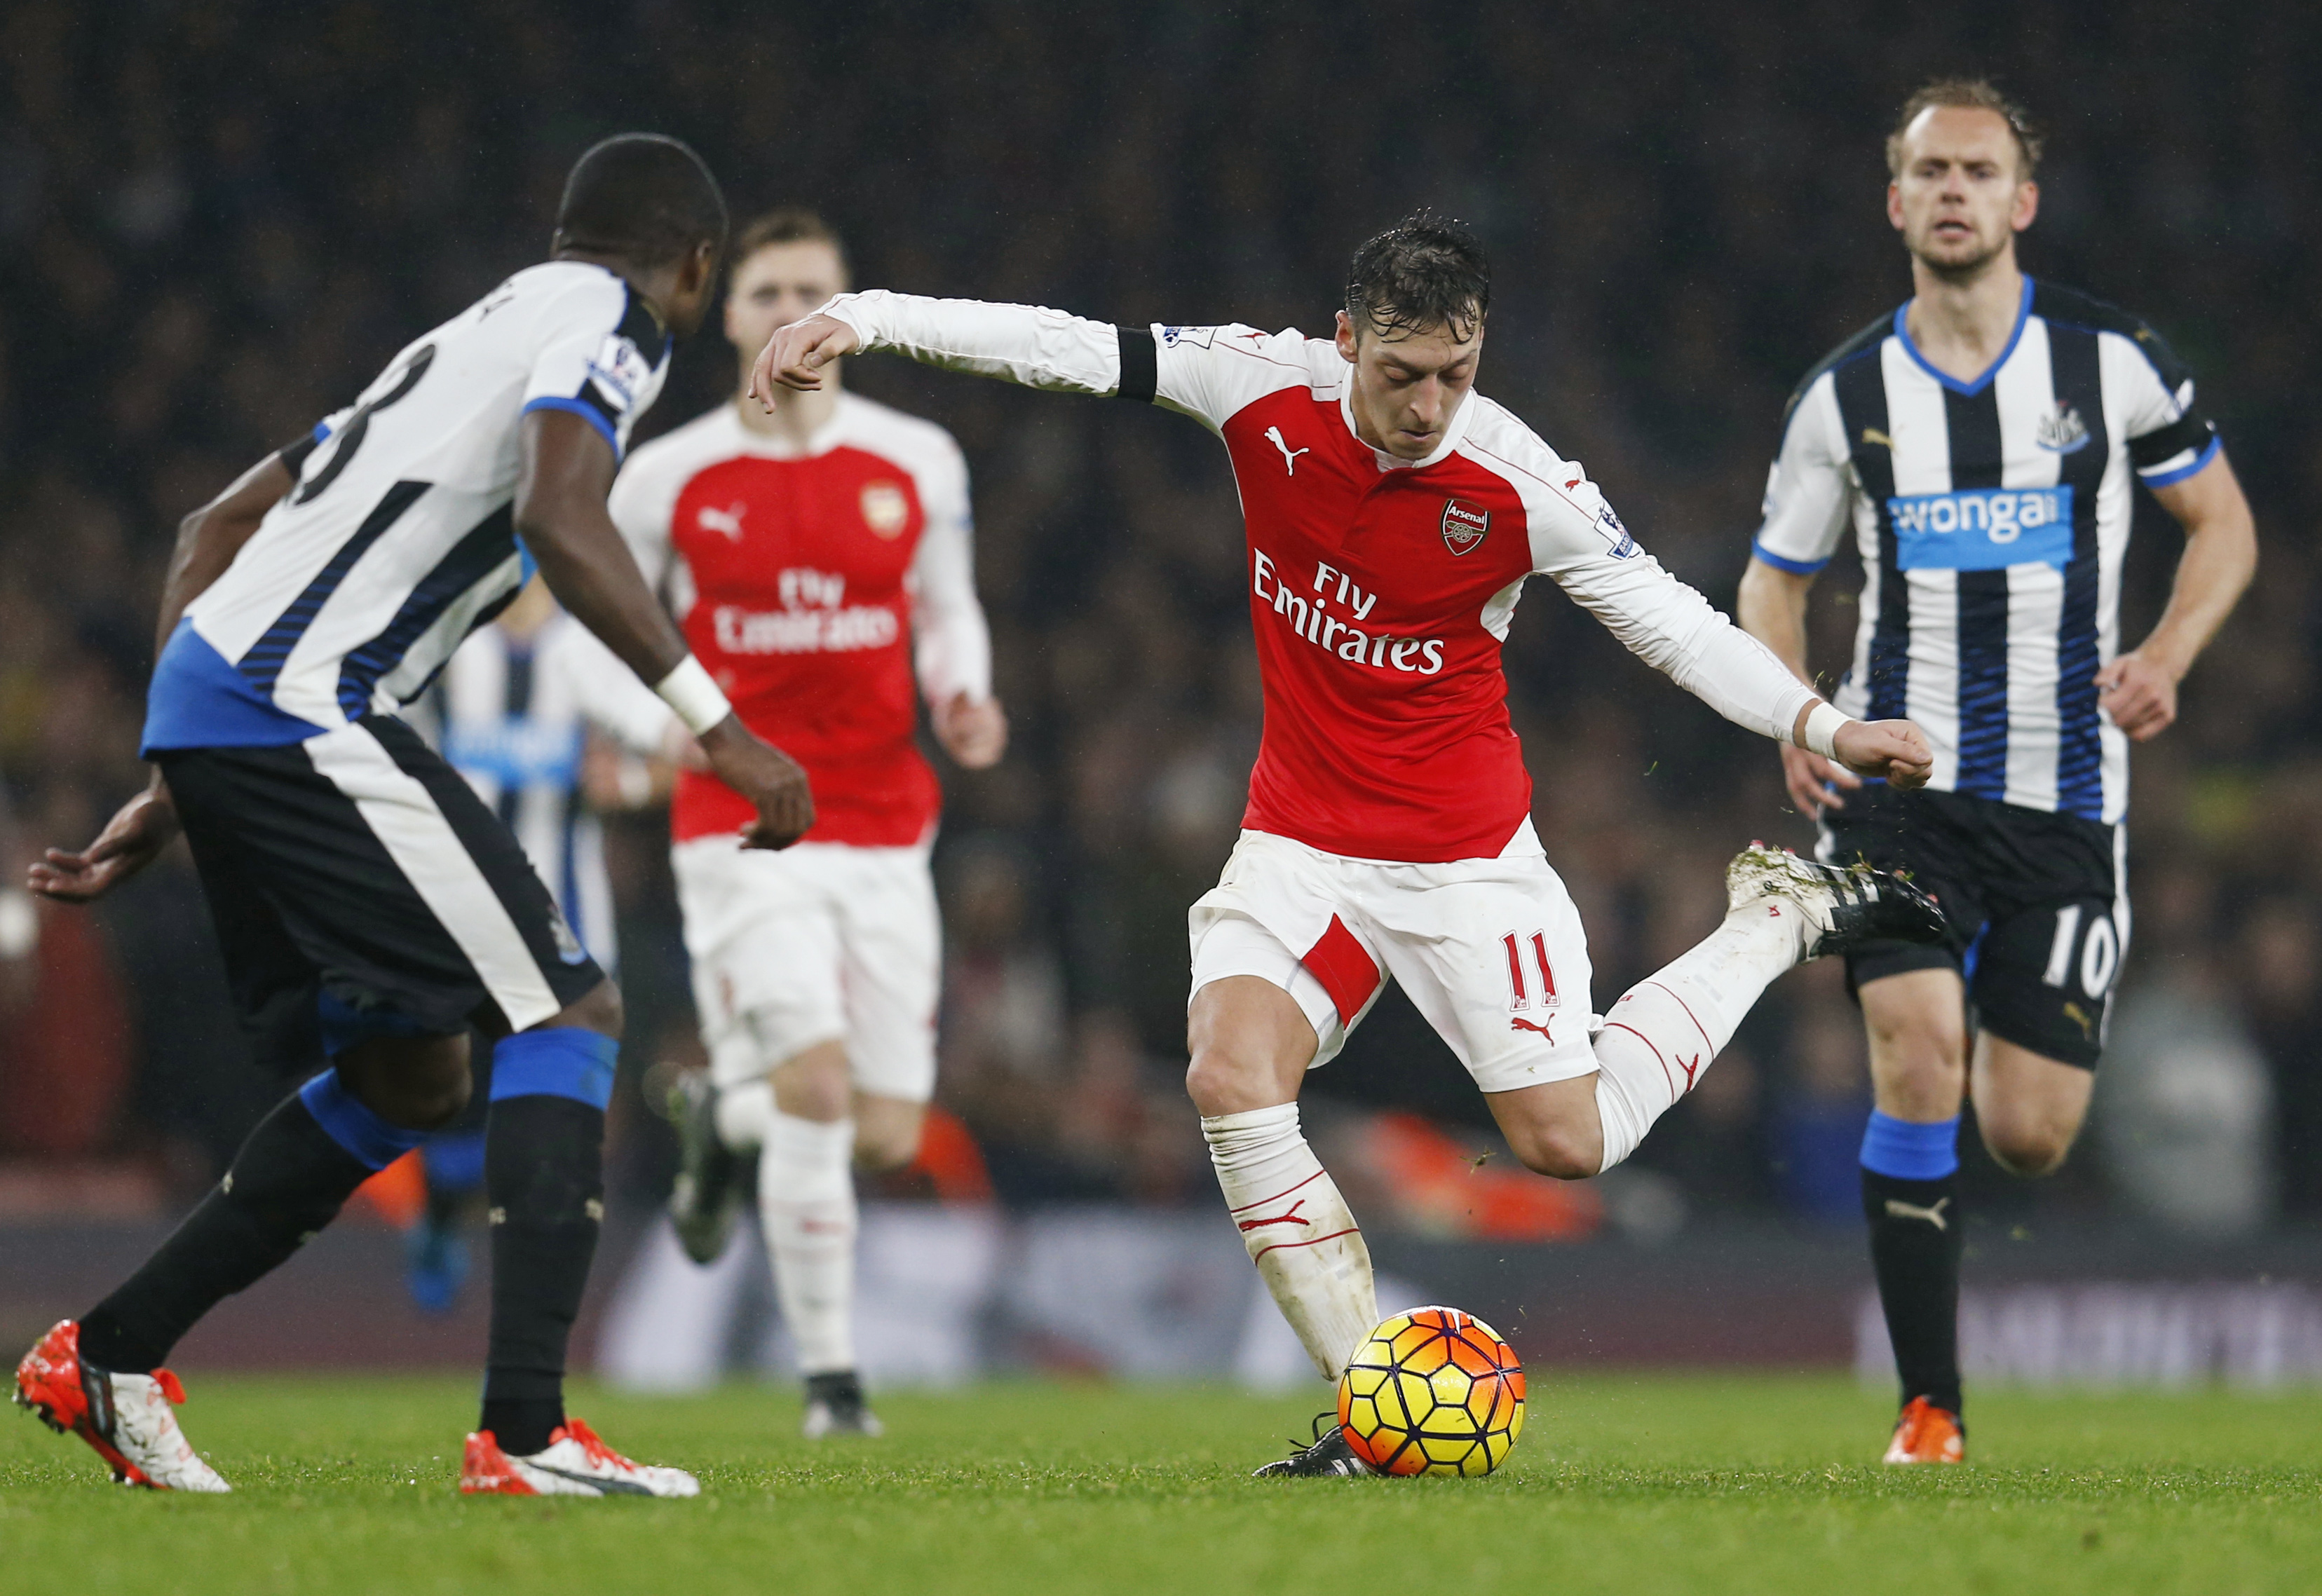 Arsenal's Mesut Ozil in action during Barclays Premier League game against Newcastle United at Emirates Stadium on Saturday, January 2, 2016. Photo: Reuters